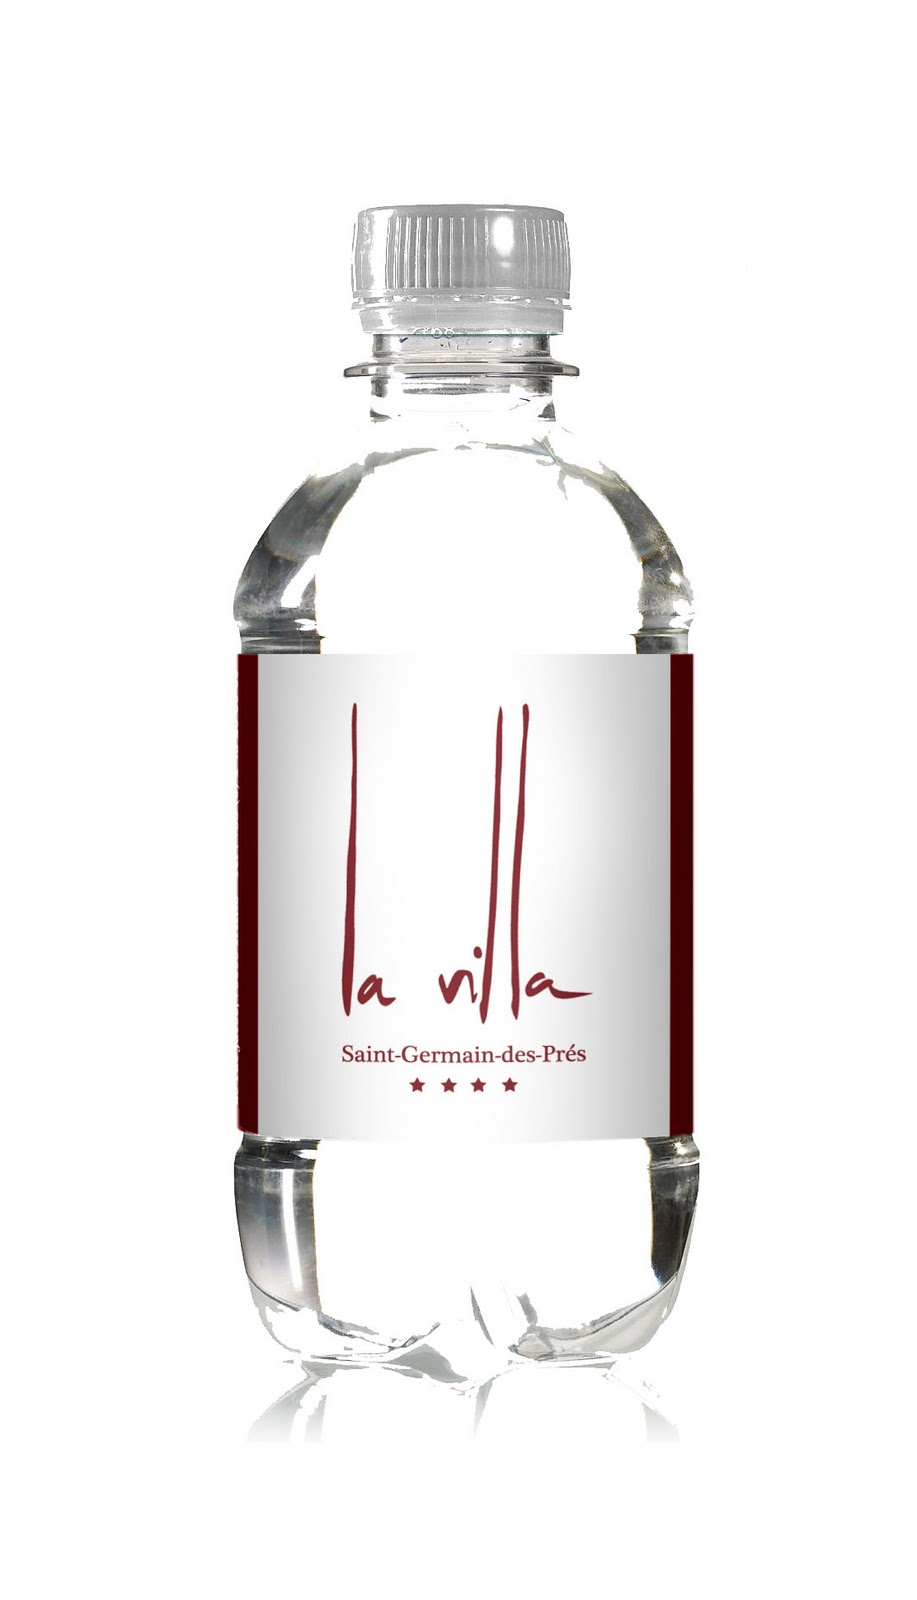 La villa saint germain water by drinkyz - Bouteille eau de paris ...